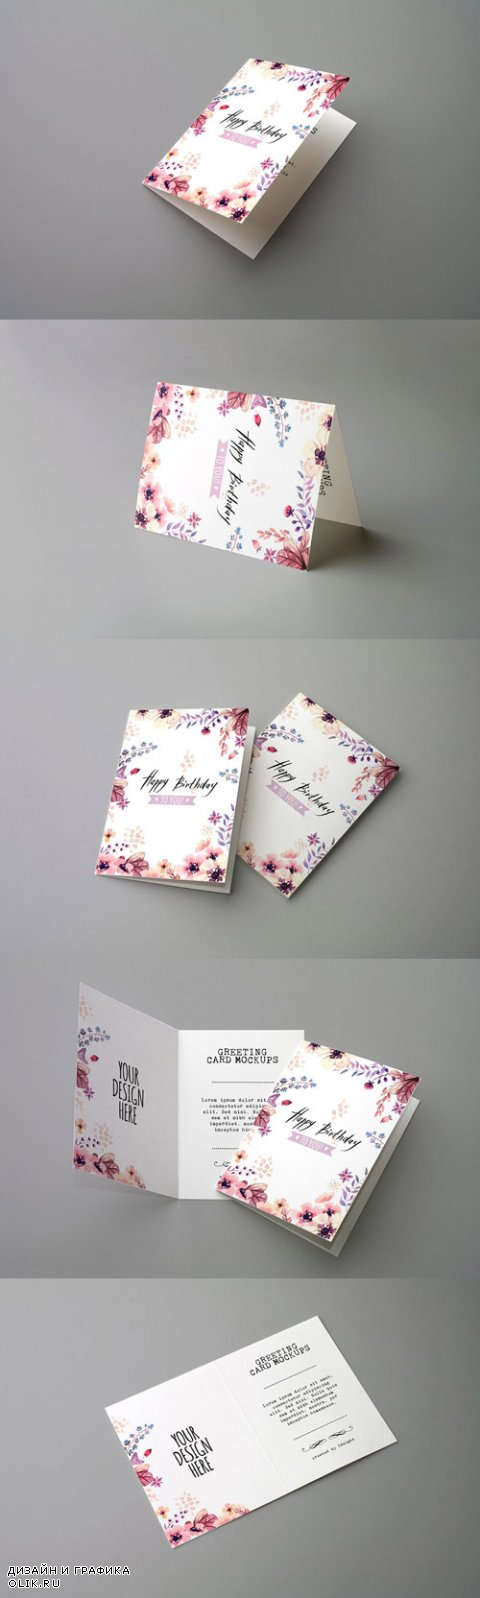 PSD Invitation & Greeting Card Mockups V2